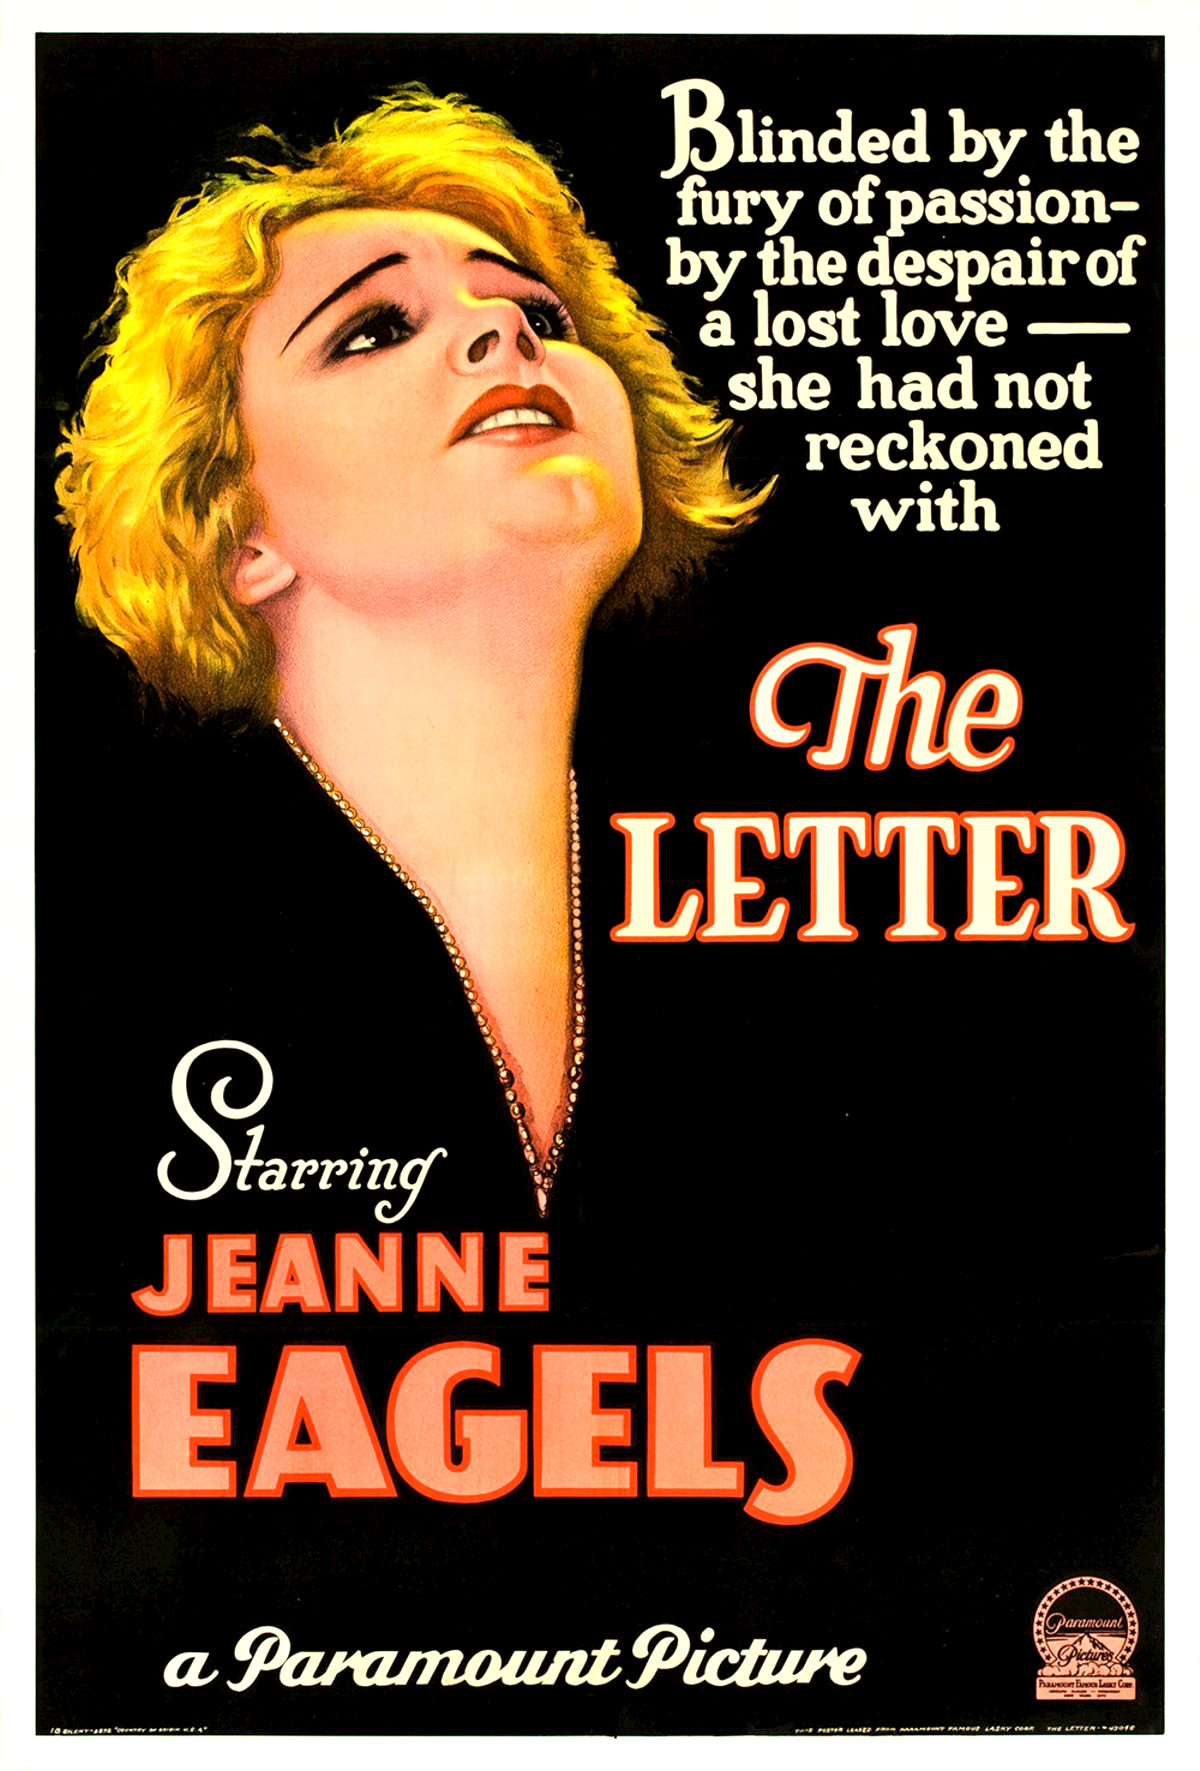 movies that start with the letter e the letter 1929 12239 | The Letter poster 1929